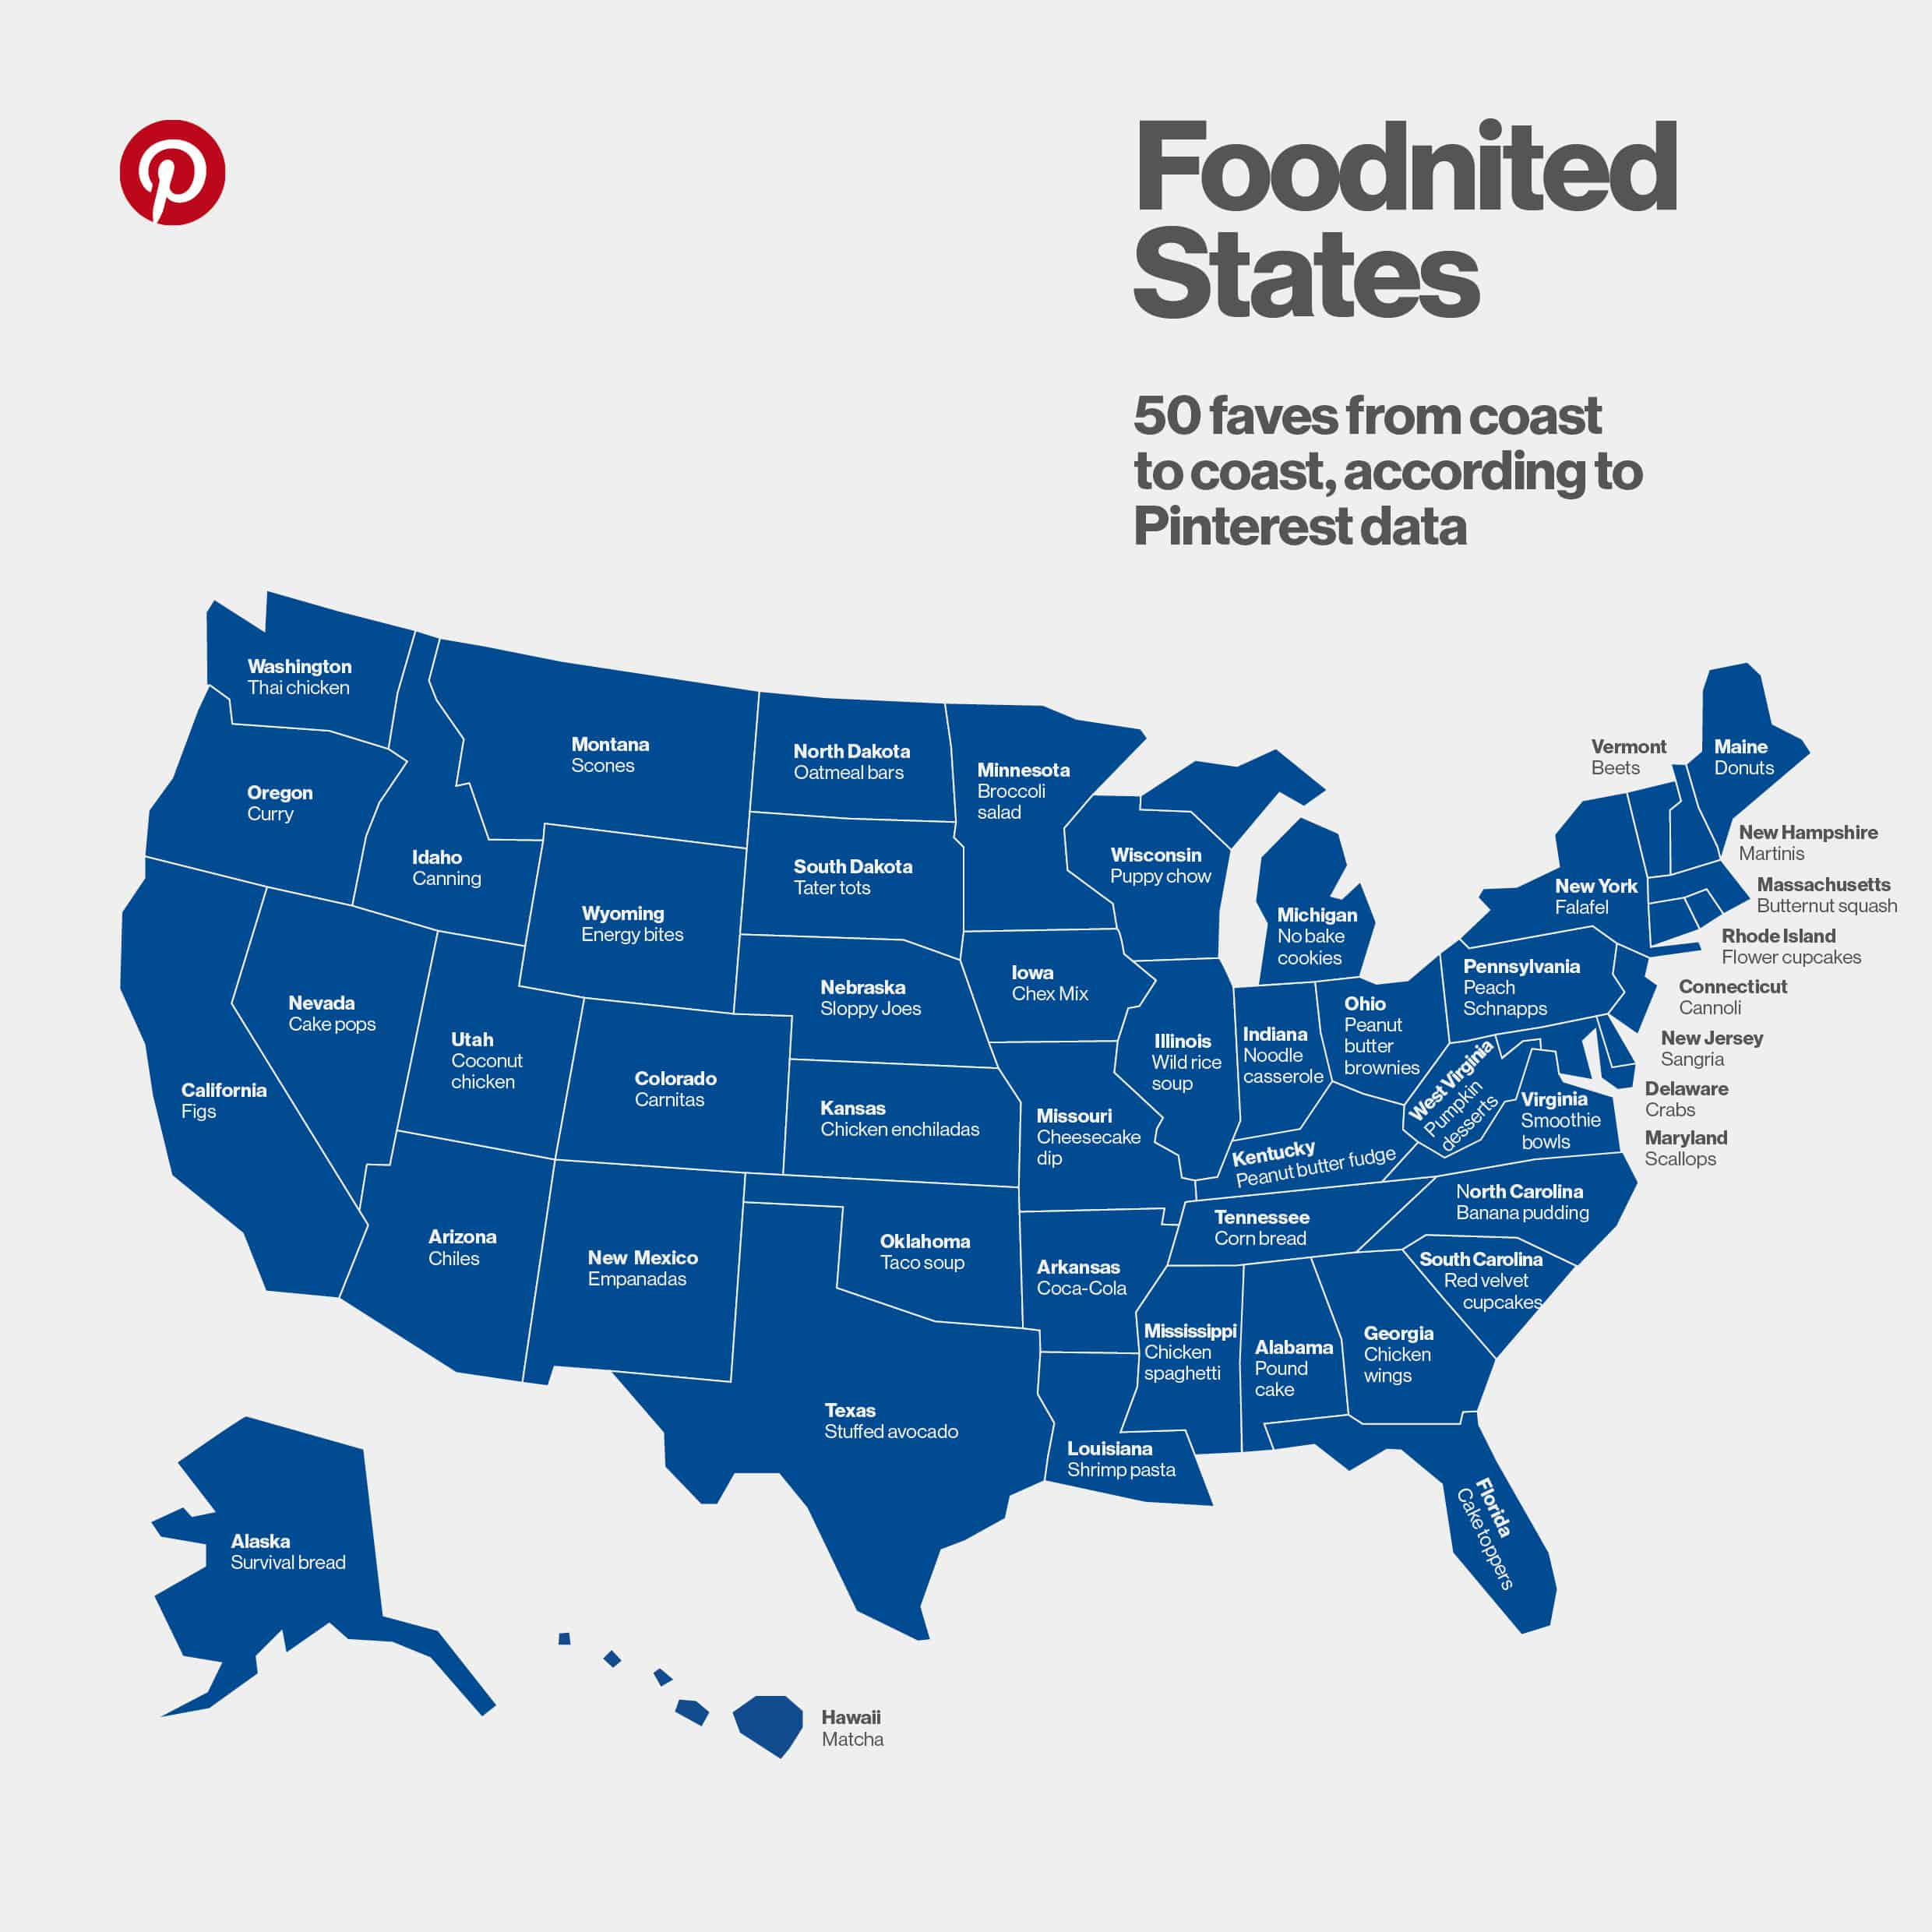 The Most Popular Food In Each State According To